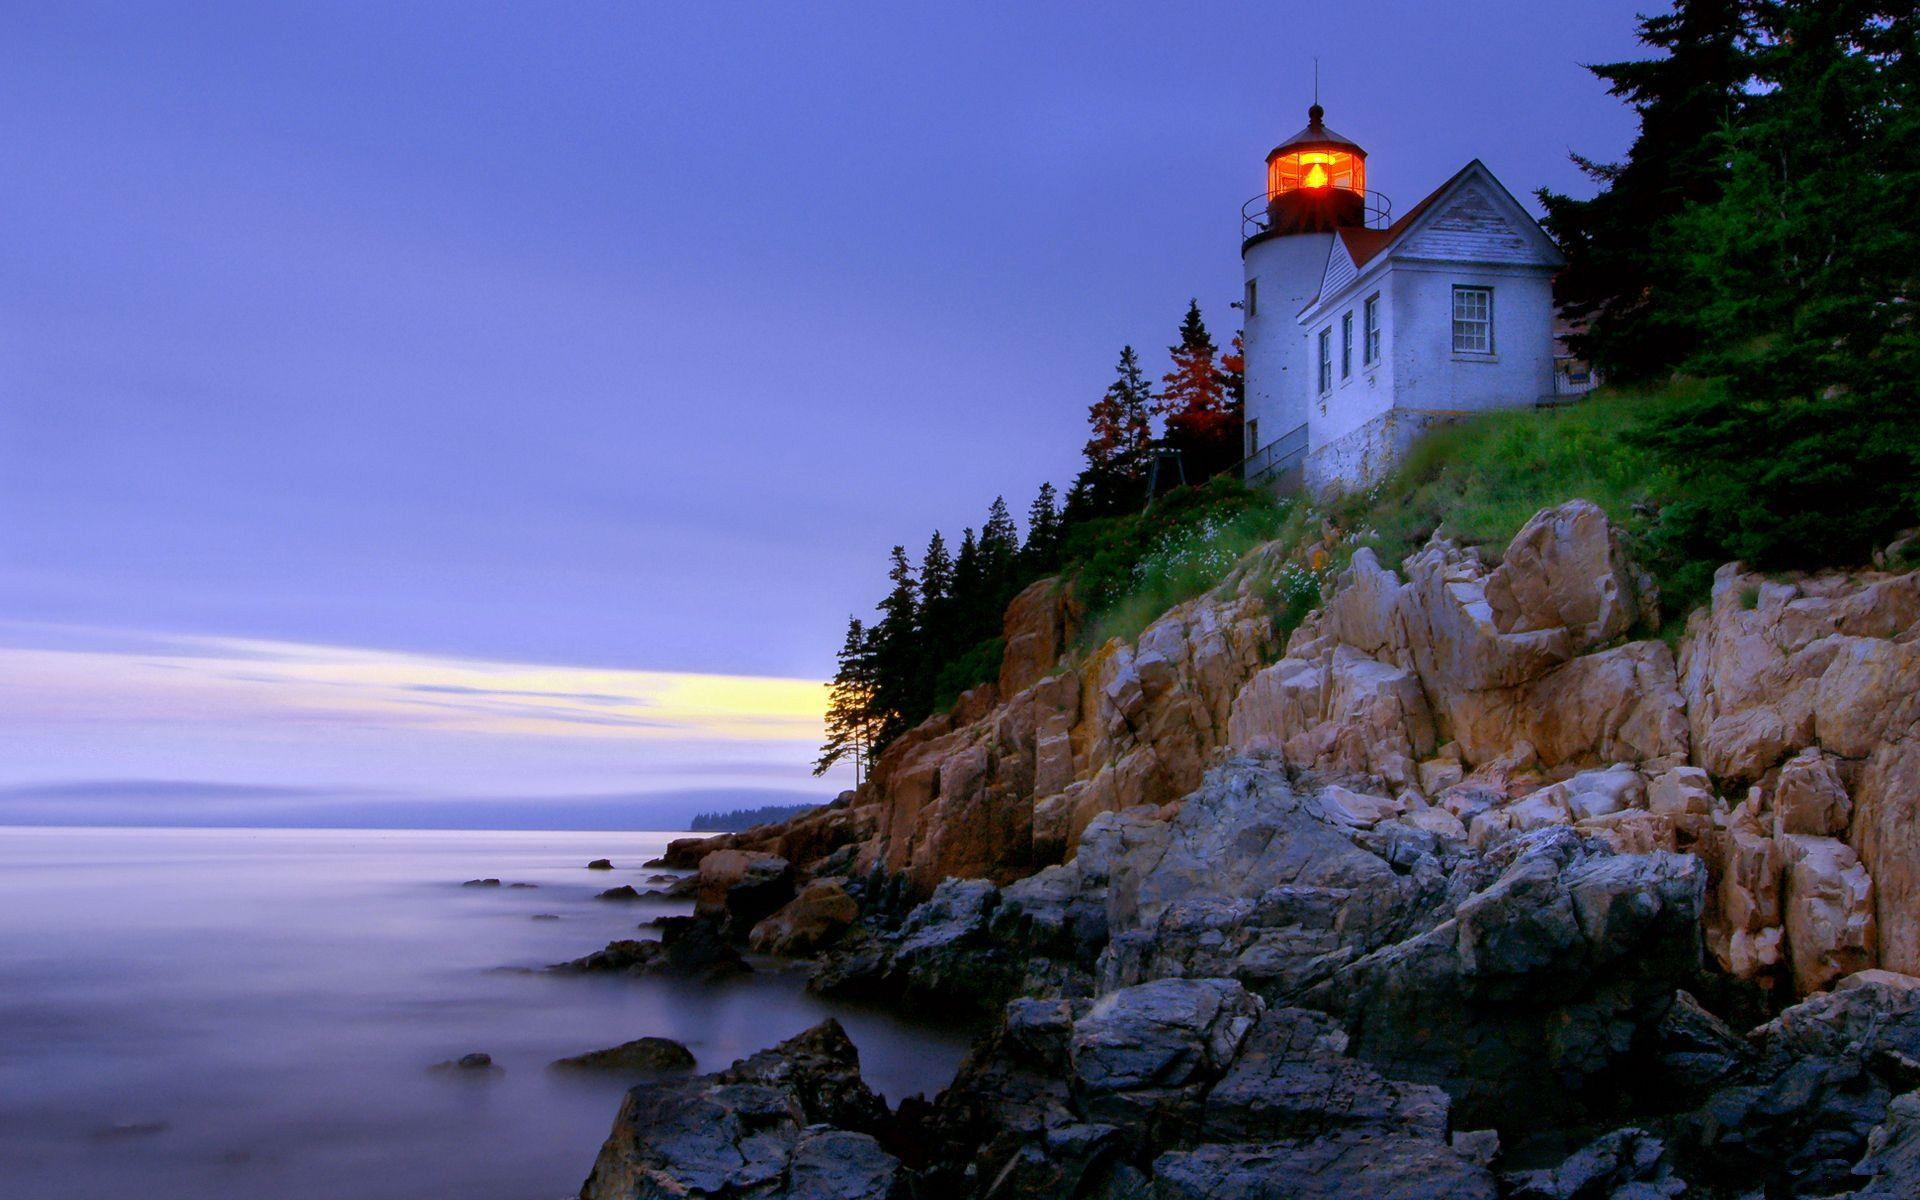 Lighthouse Wallpaper 5620 1920x1200 px ~ FreeWallSource.